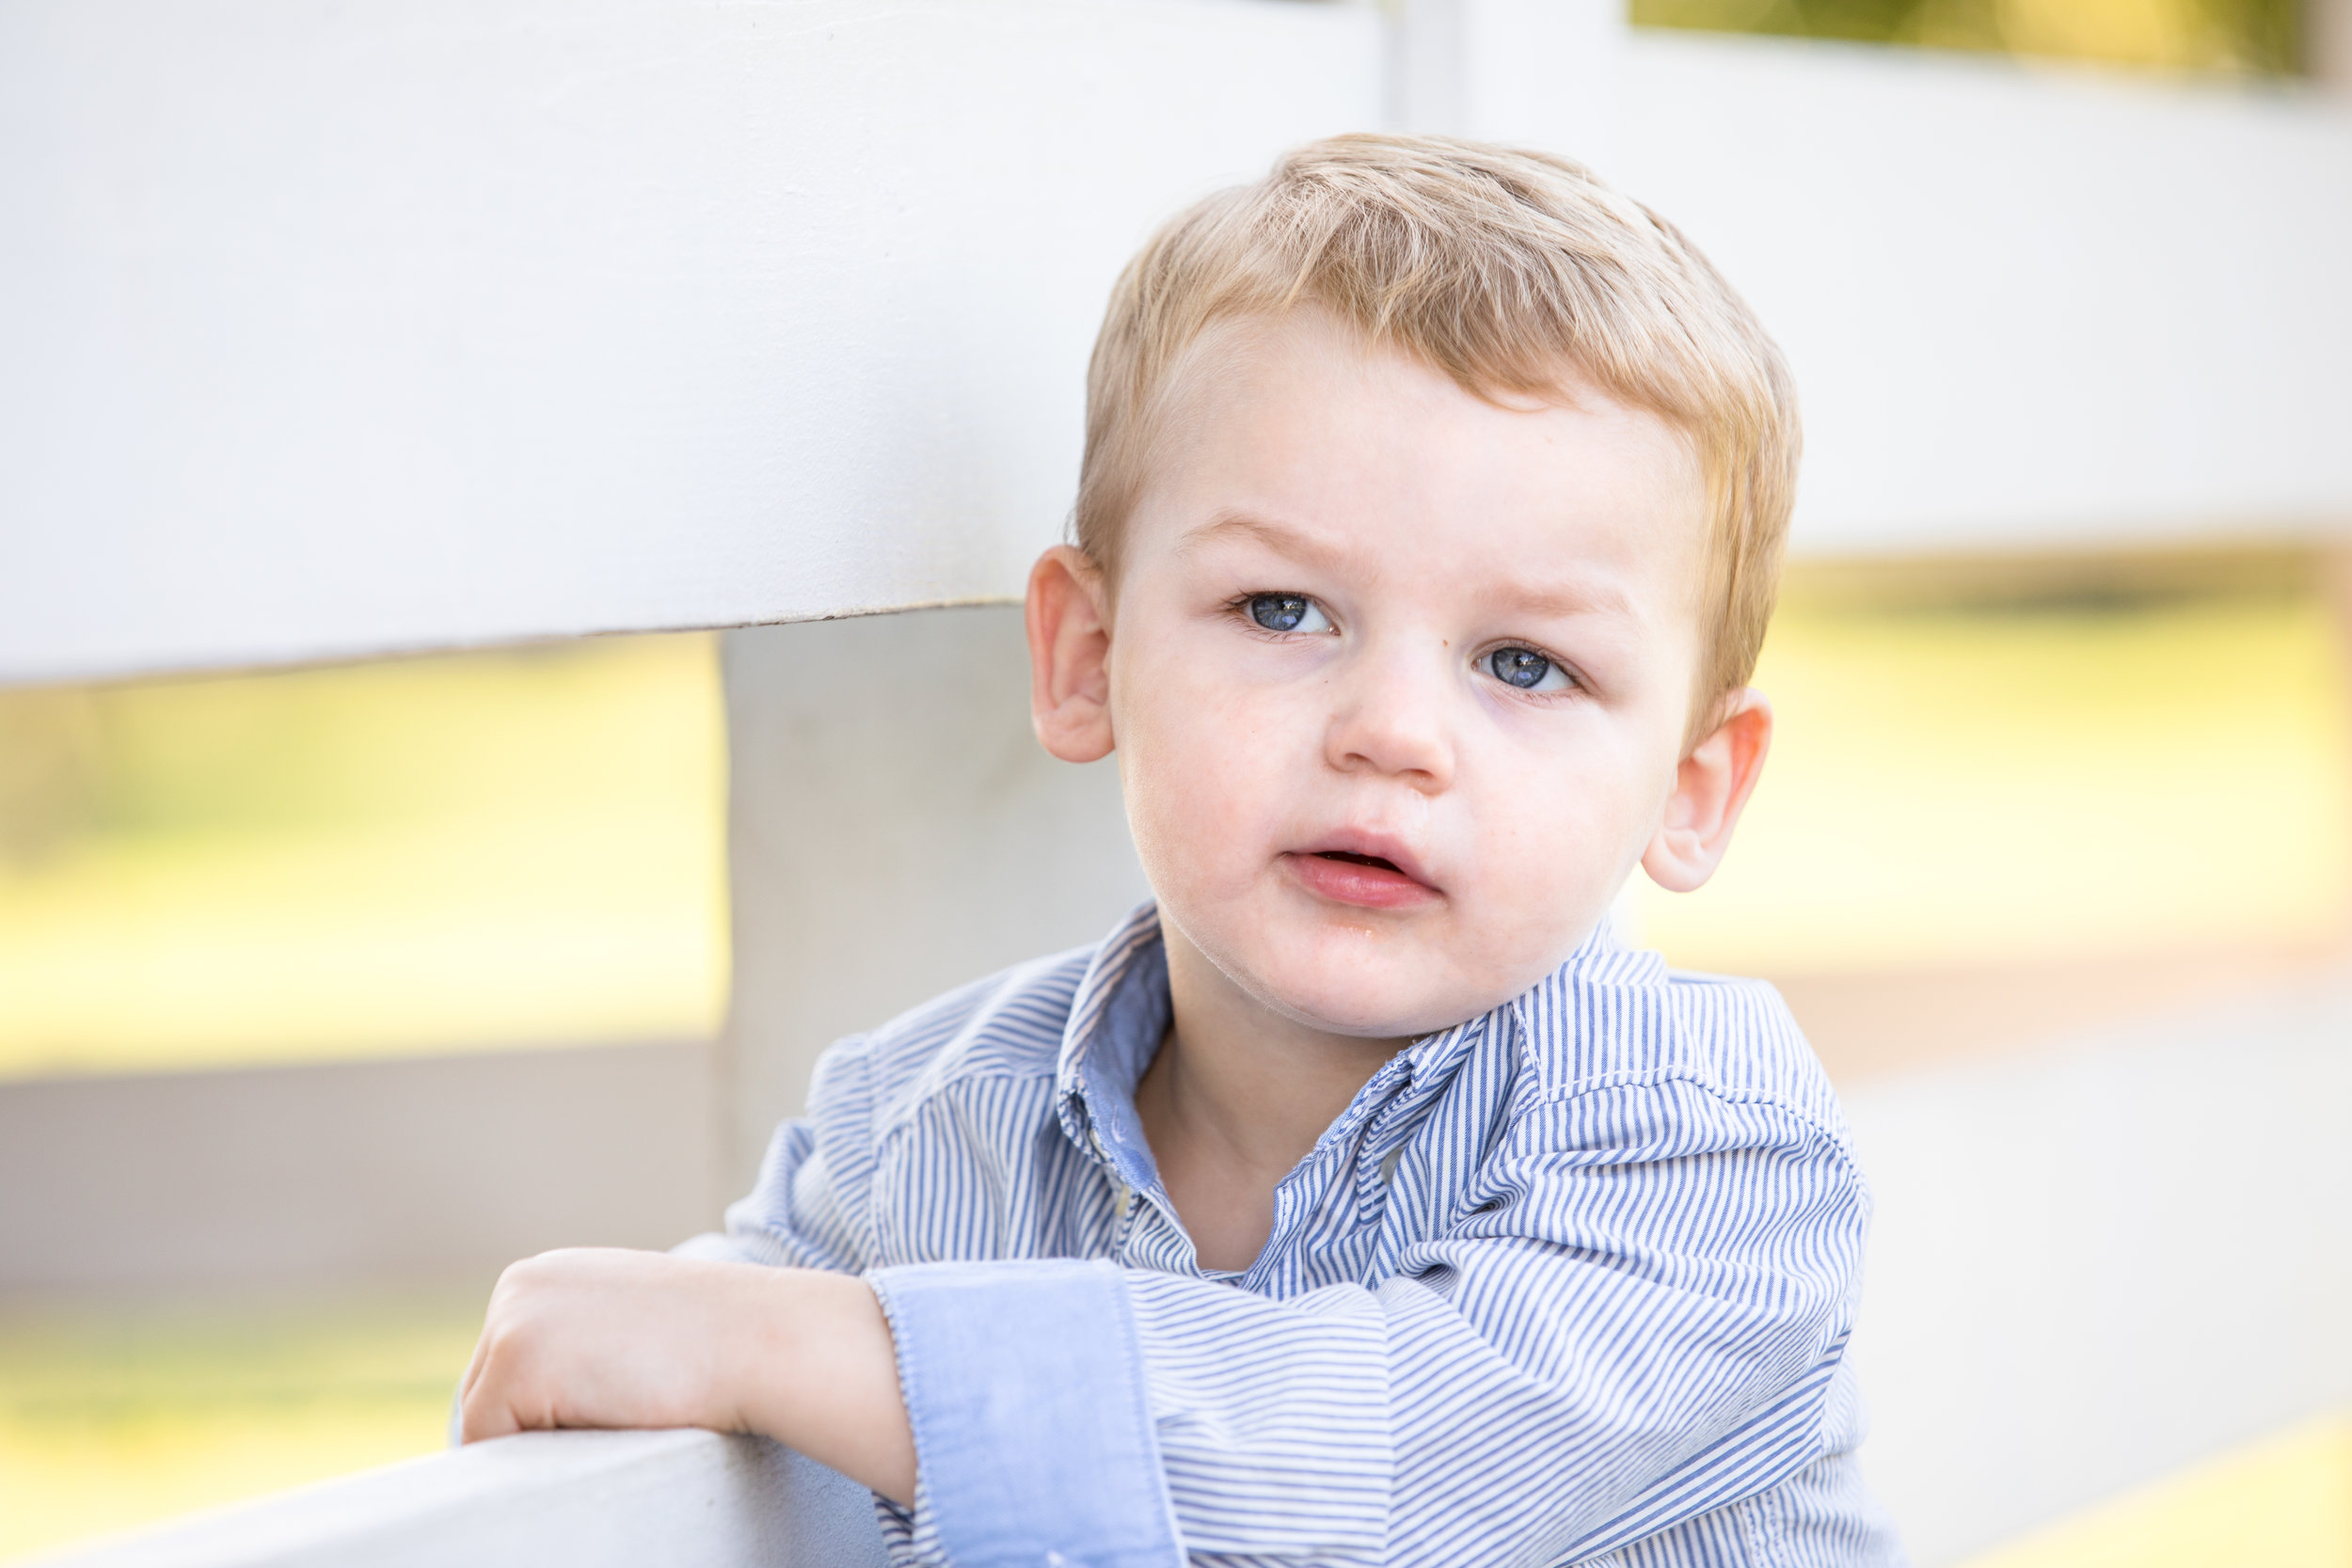 Growing up - Possibly one of the best parts of doing family photography is getting to watch kids grow up. From his first birthday cake smash to annual family photos to holiday cards, I've loved watching this kid grow and can't wait to take more photos of him!